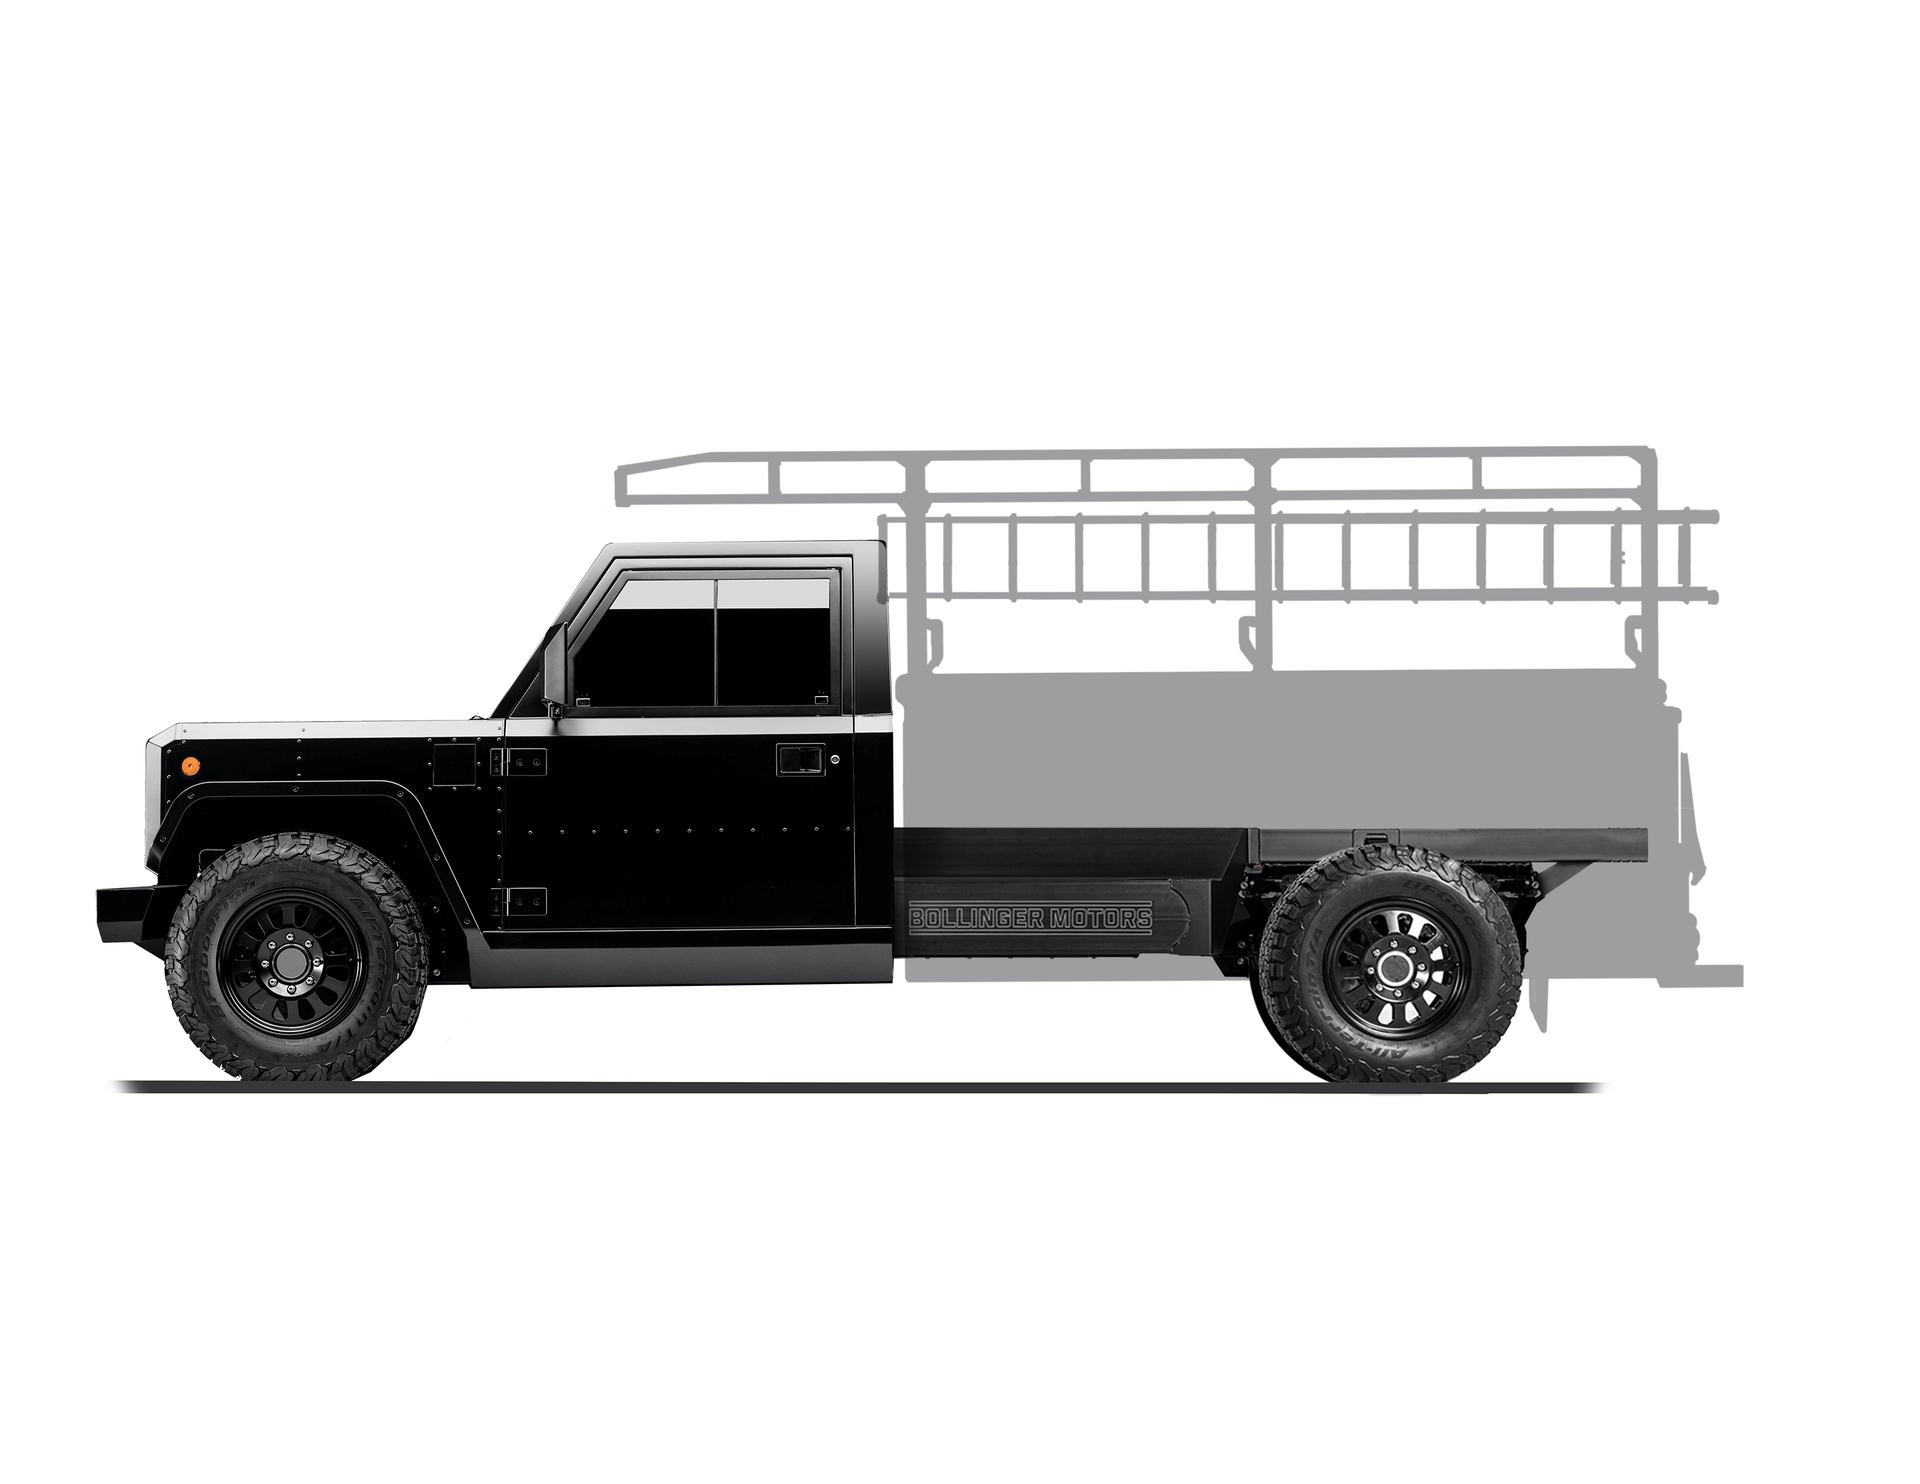 Bollinger-Motors-B2-Chassis-Cab-Contractor-Truck-side